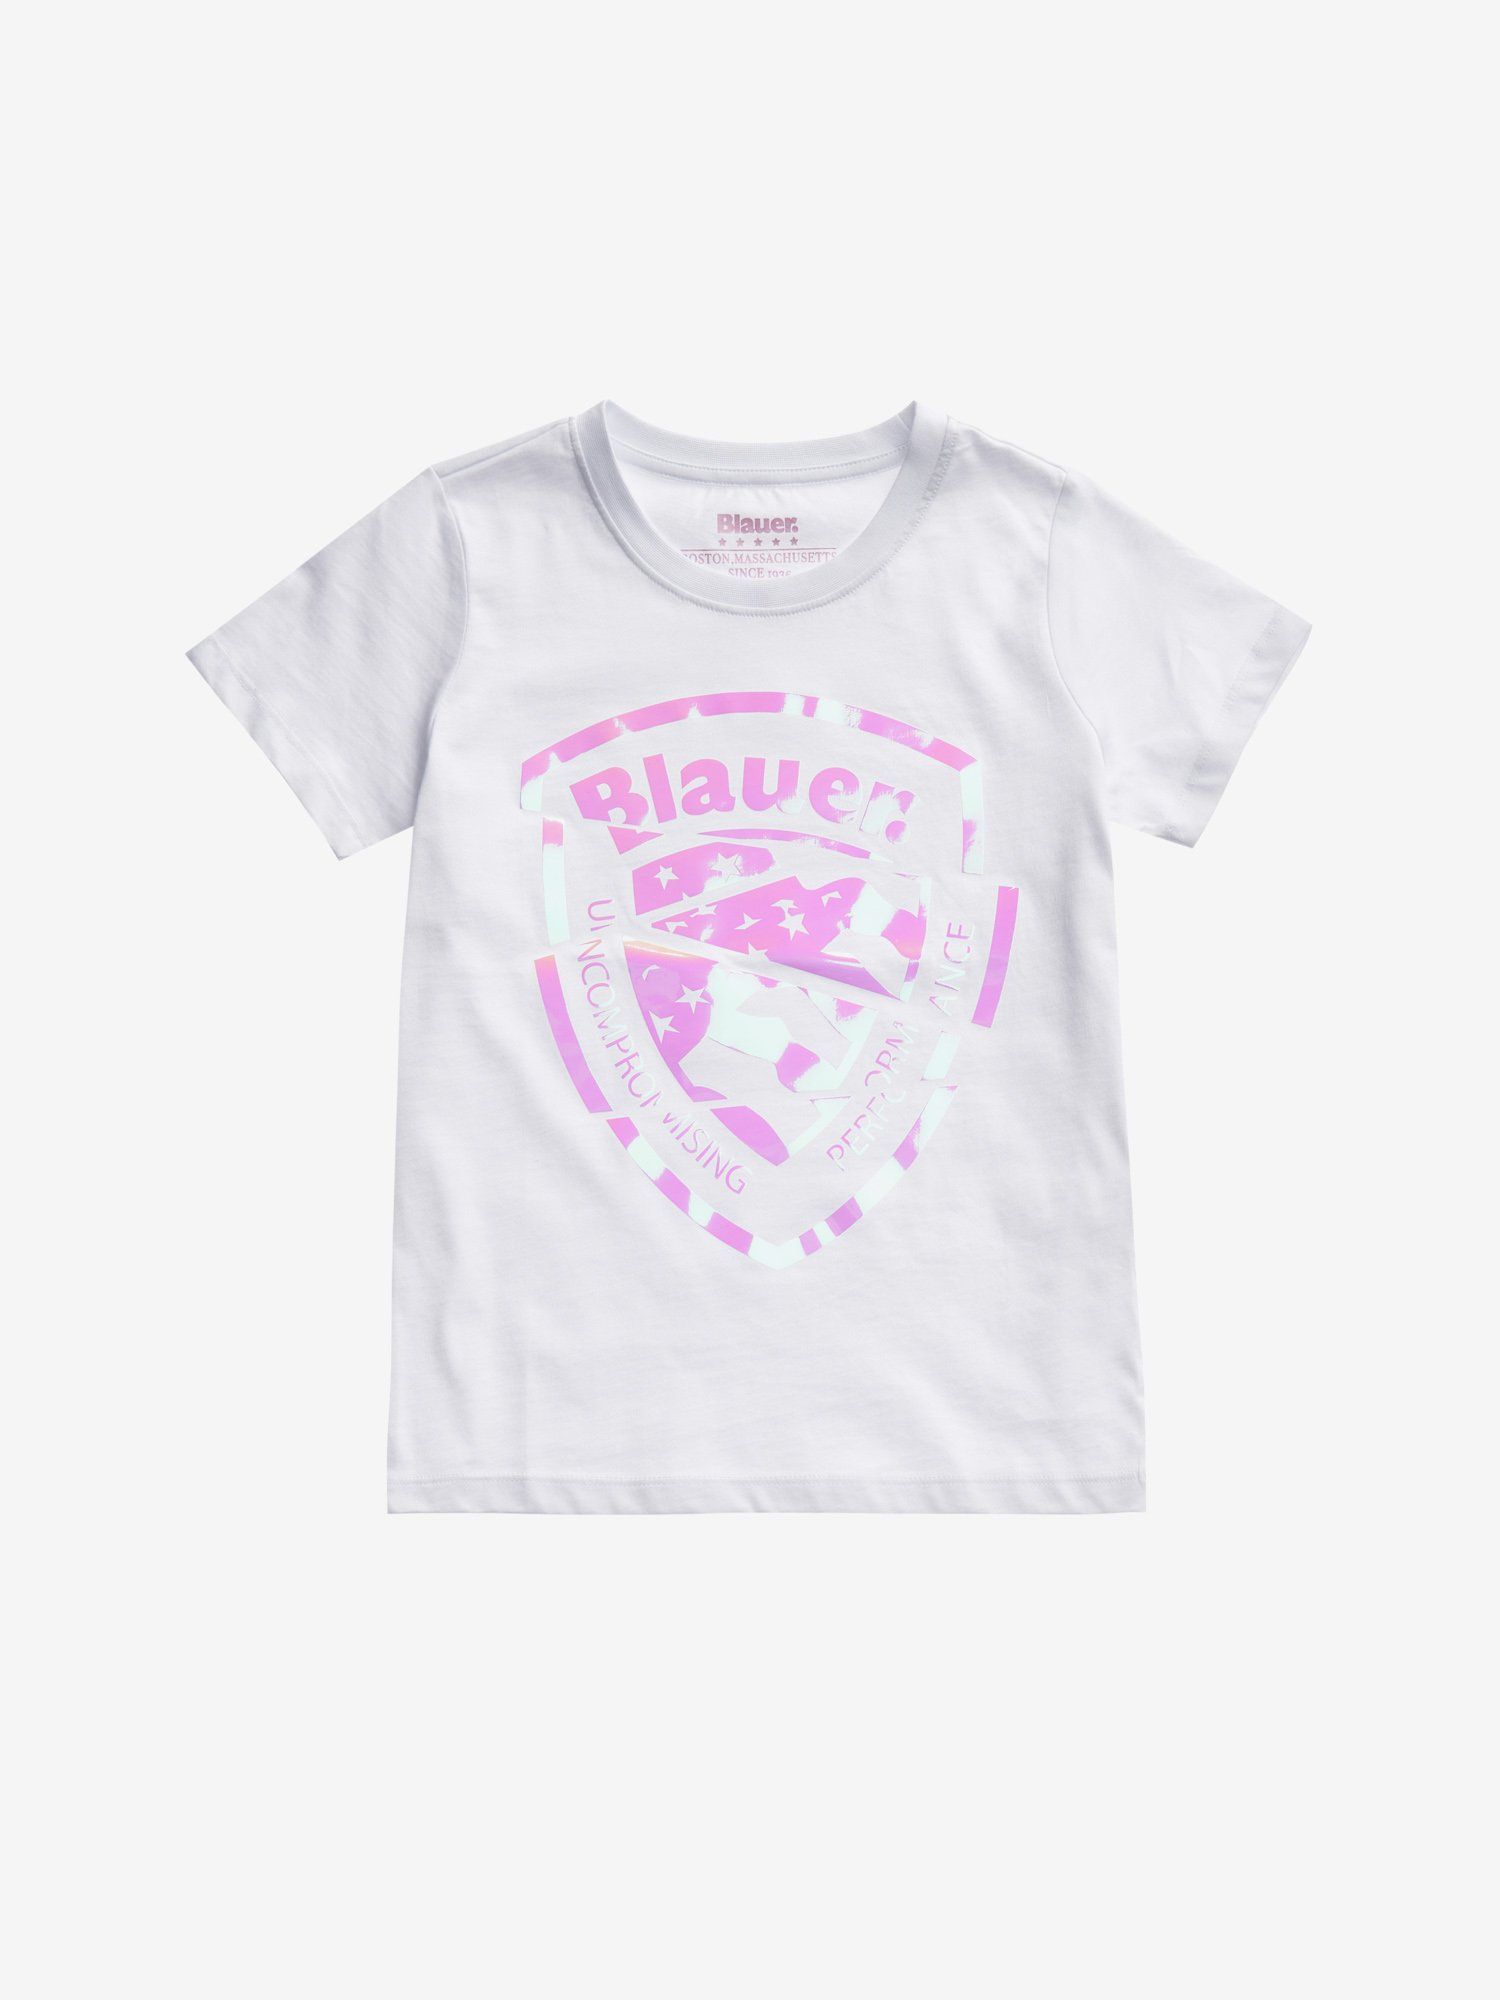 Blauer - JUNIOR IRIDESCENT SHIELD T-SHIRT - white - Blauer